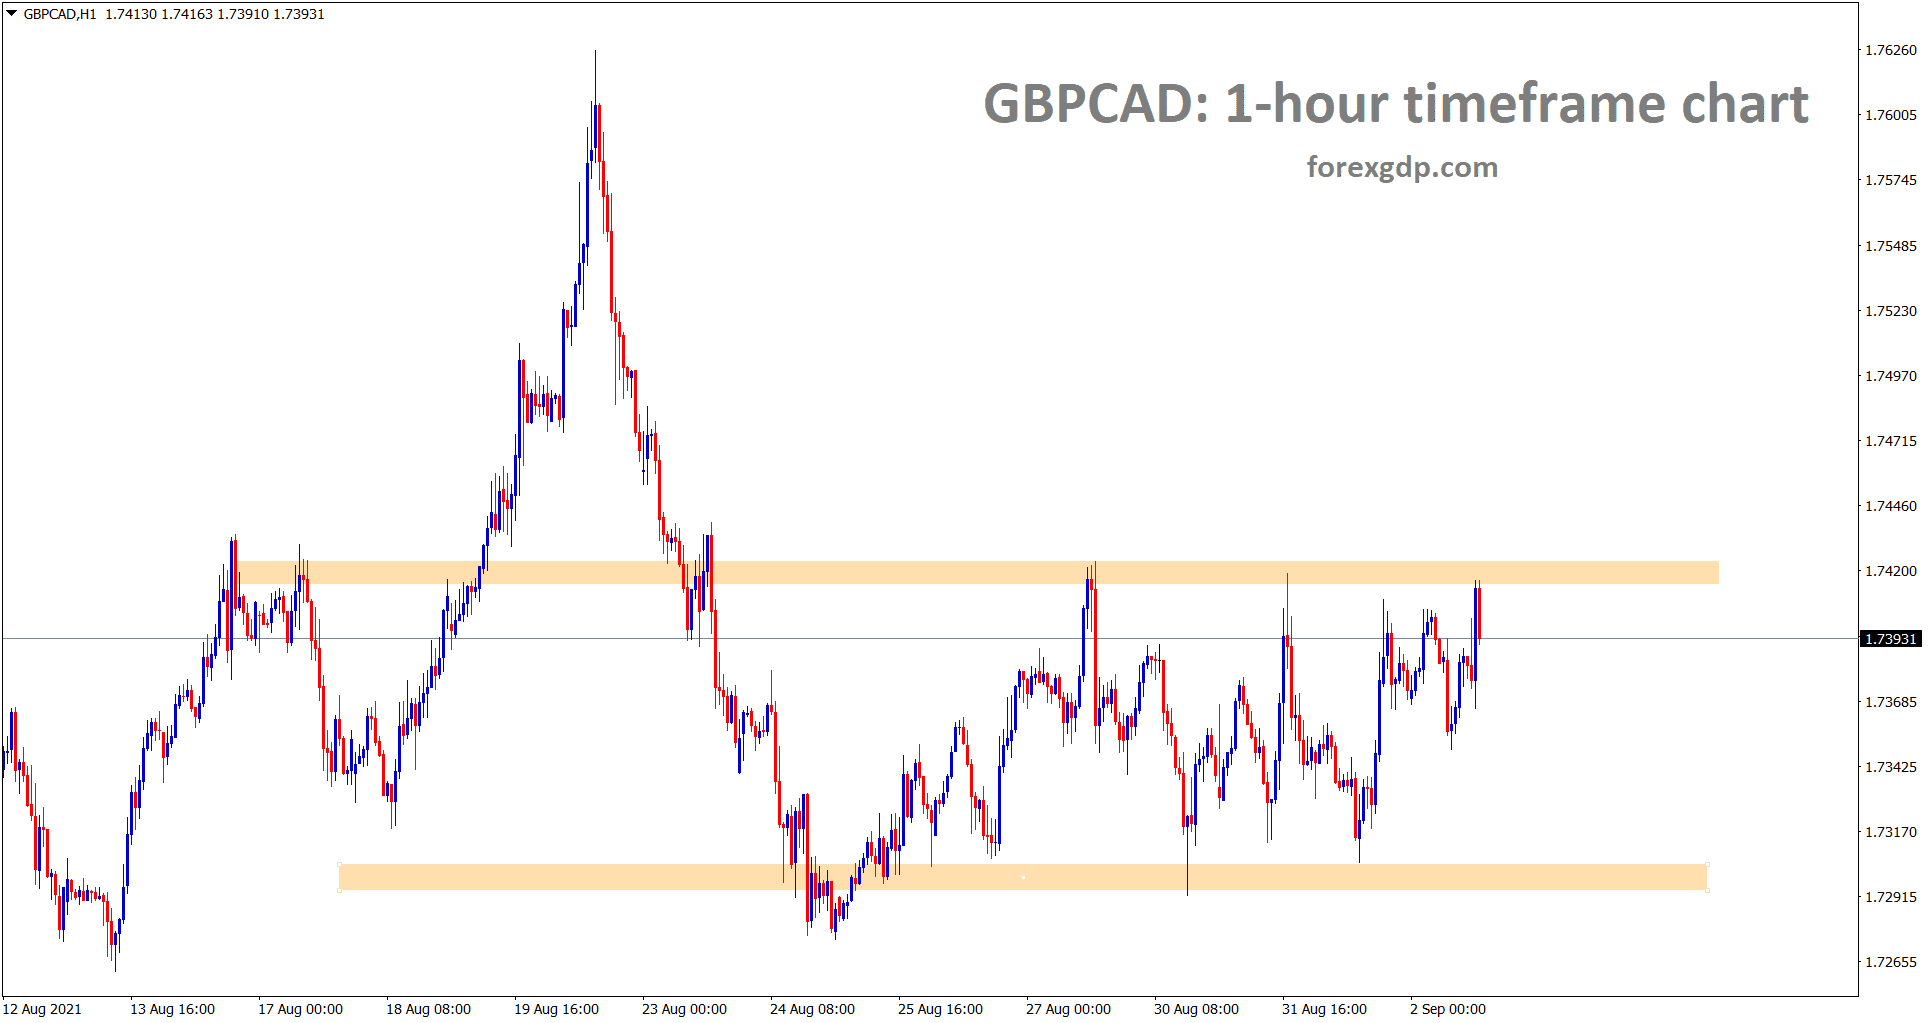 GBPCAD is standing now at the resistance area range